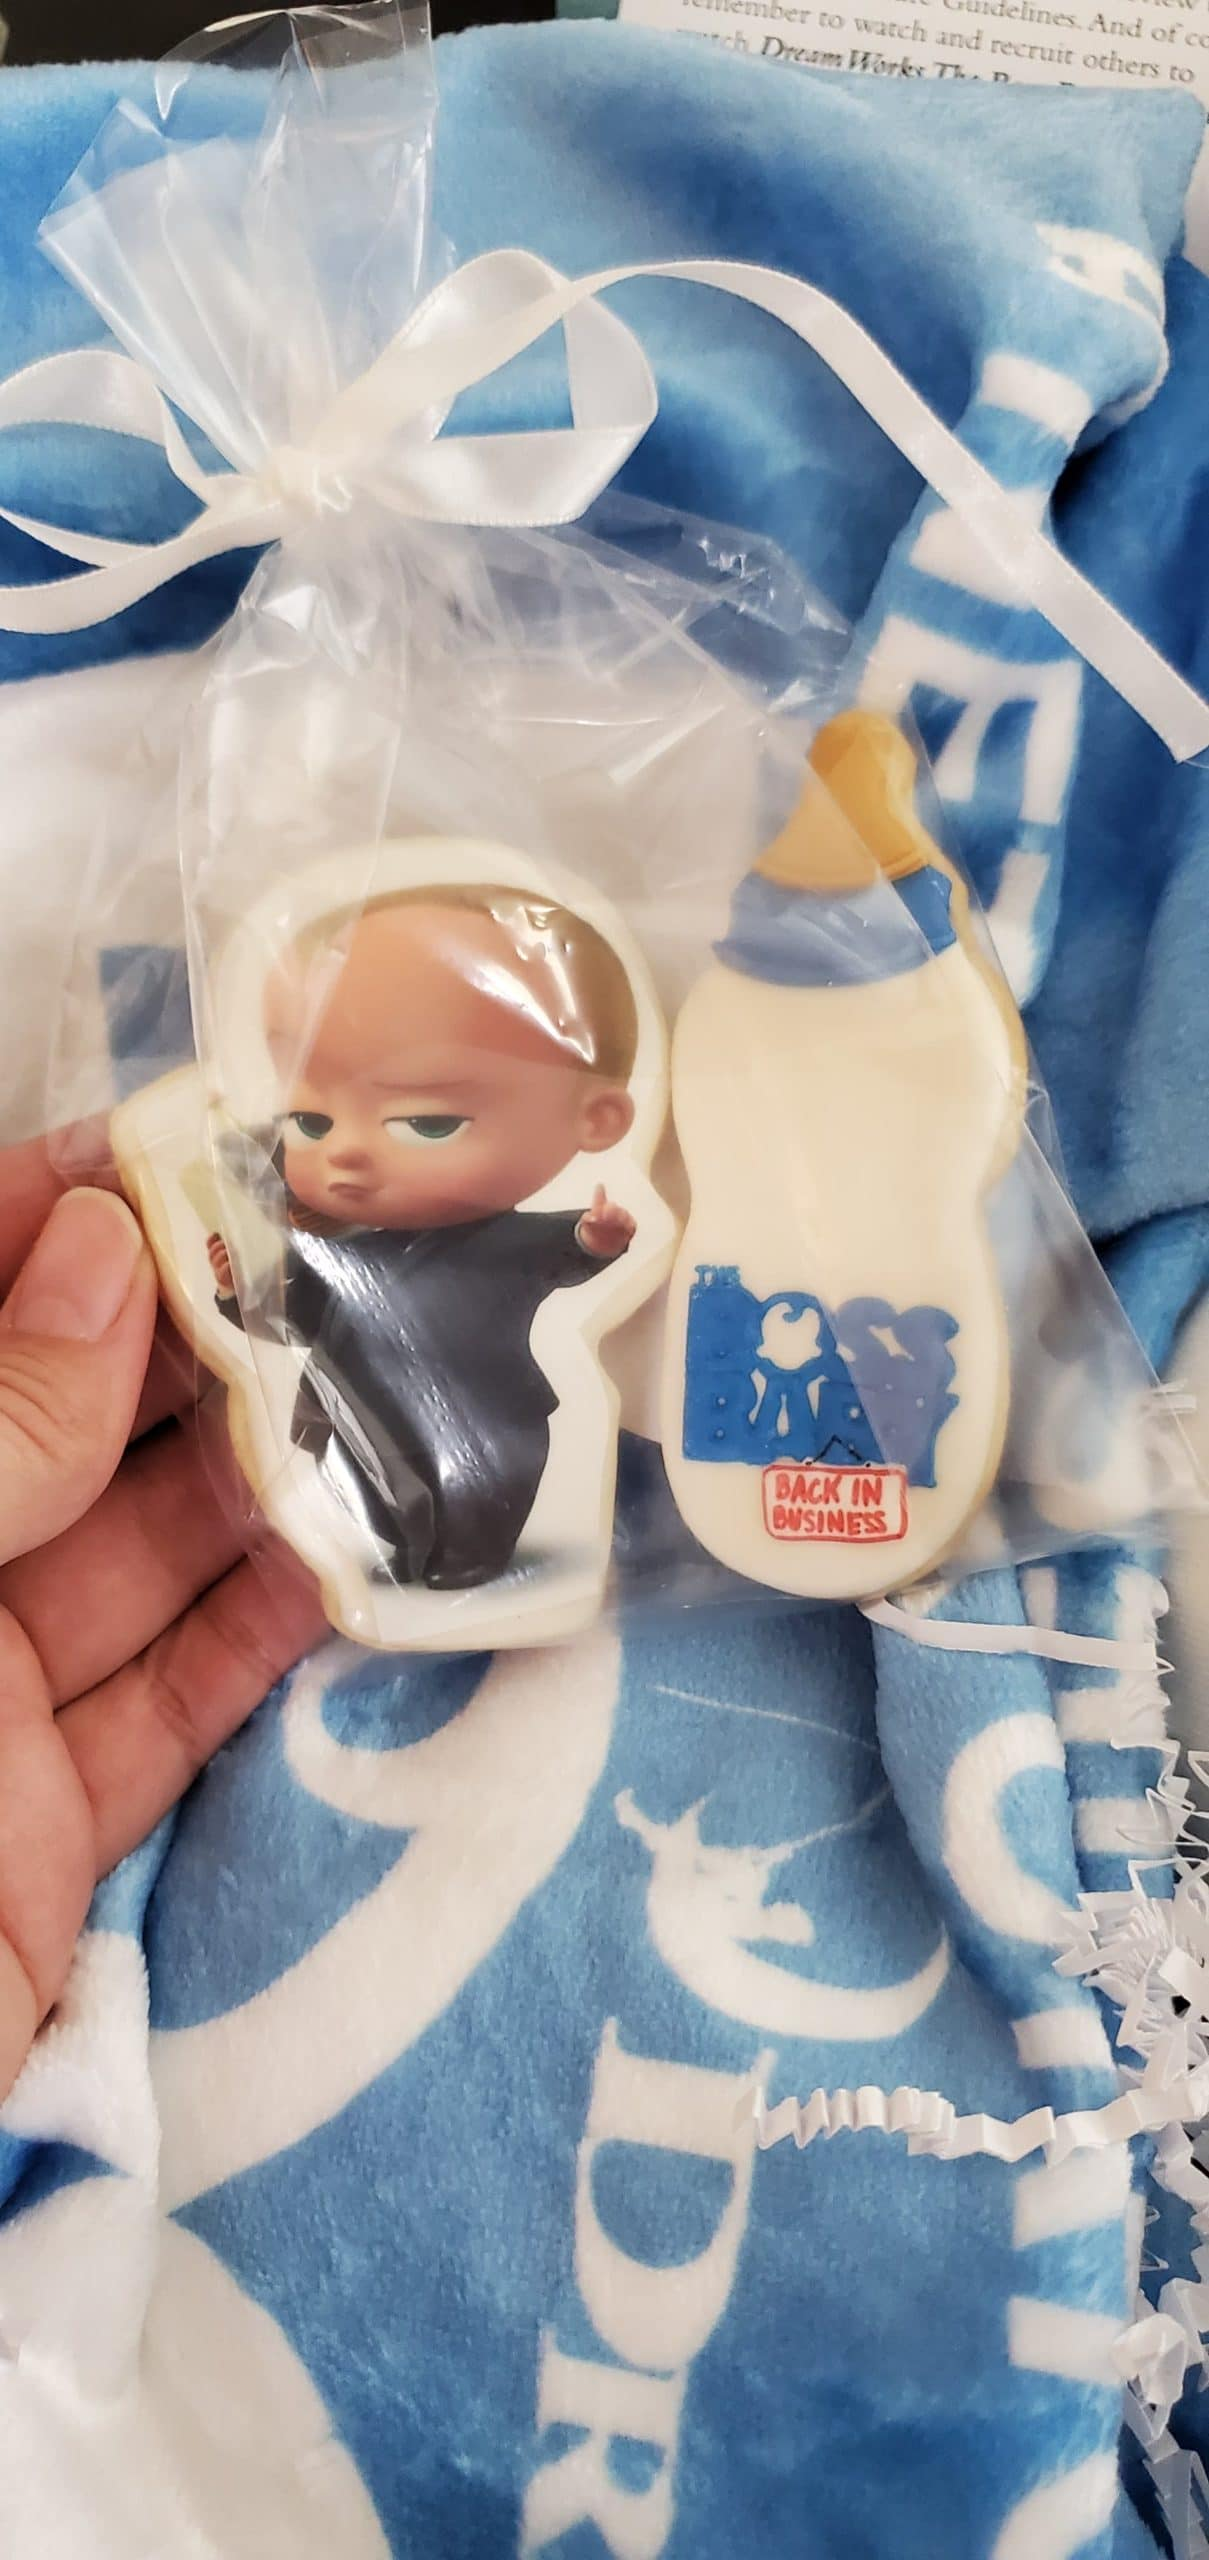 The Boss Baby Back in Business Cookies. The boss is back, baby! After a long sabbatical everyone's favorite modern career baby makes a comeback in the newly launched Season 3 trailer for DreamWorks The Boss Baby Back in Business.